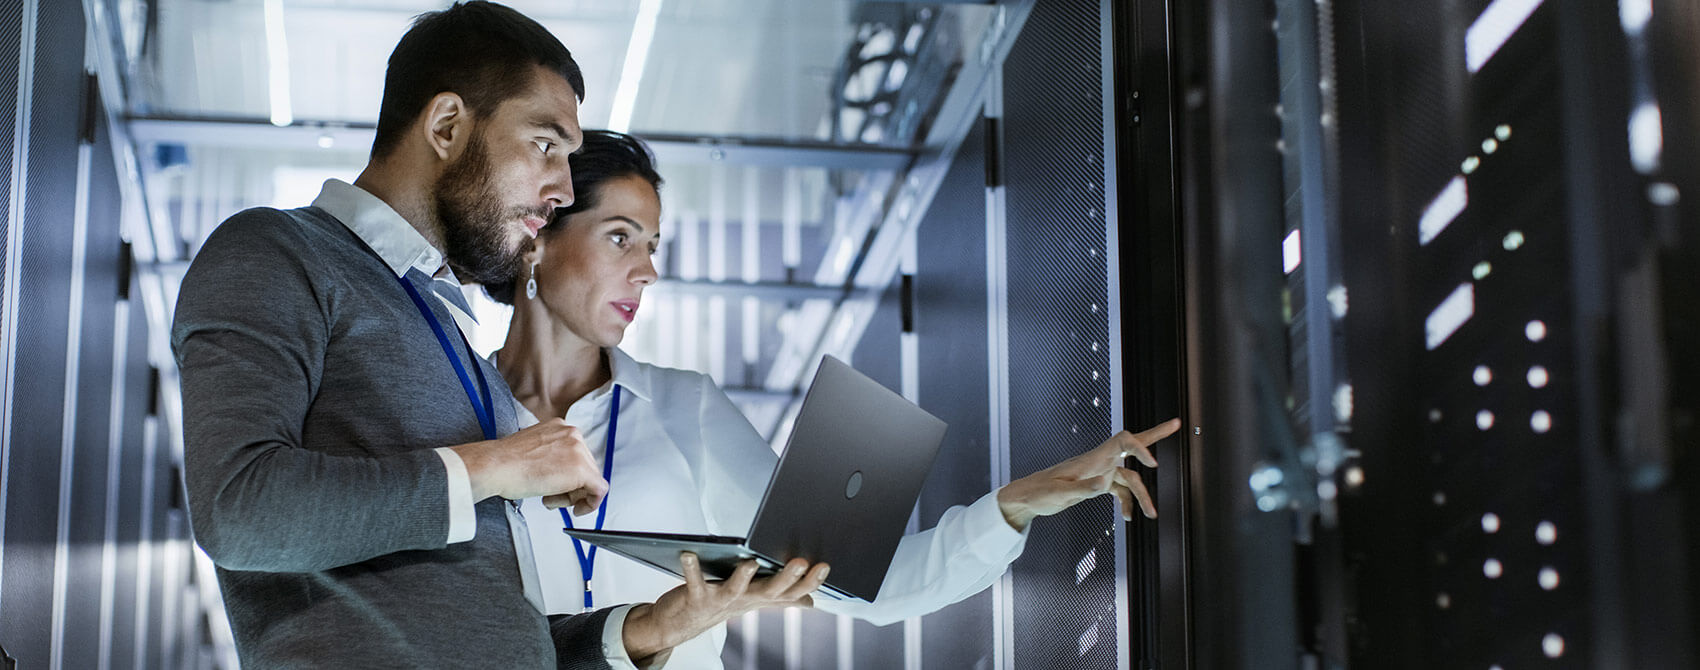 Information technology professionals examine a computer server. The male is holding a laptop, and the female is gesturing at the server.